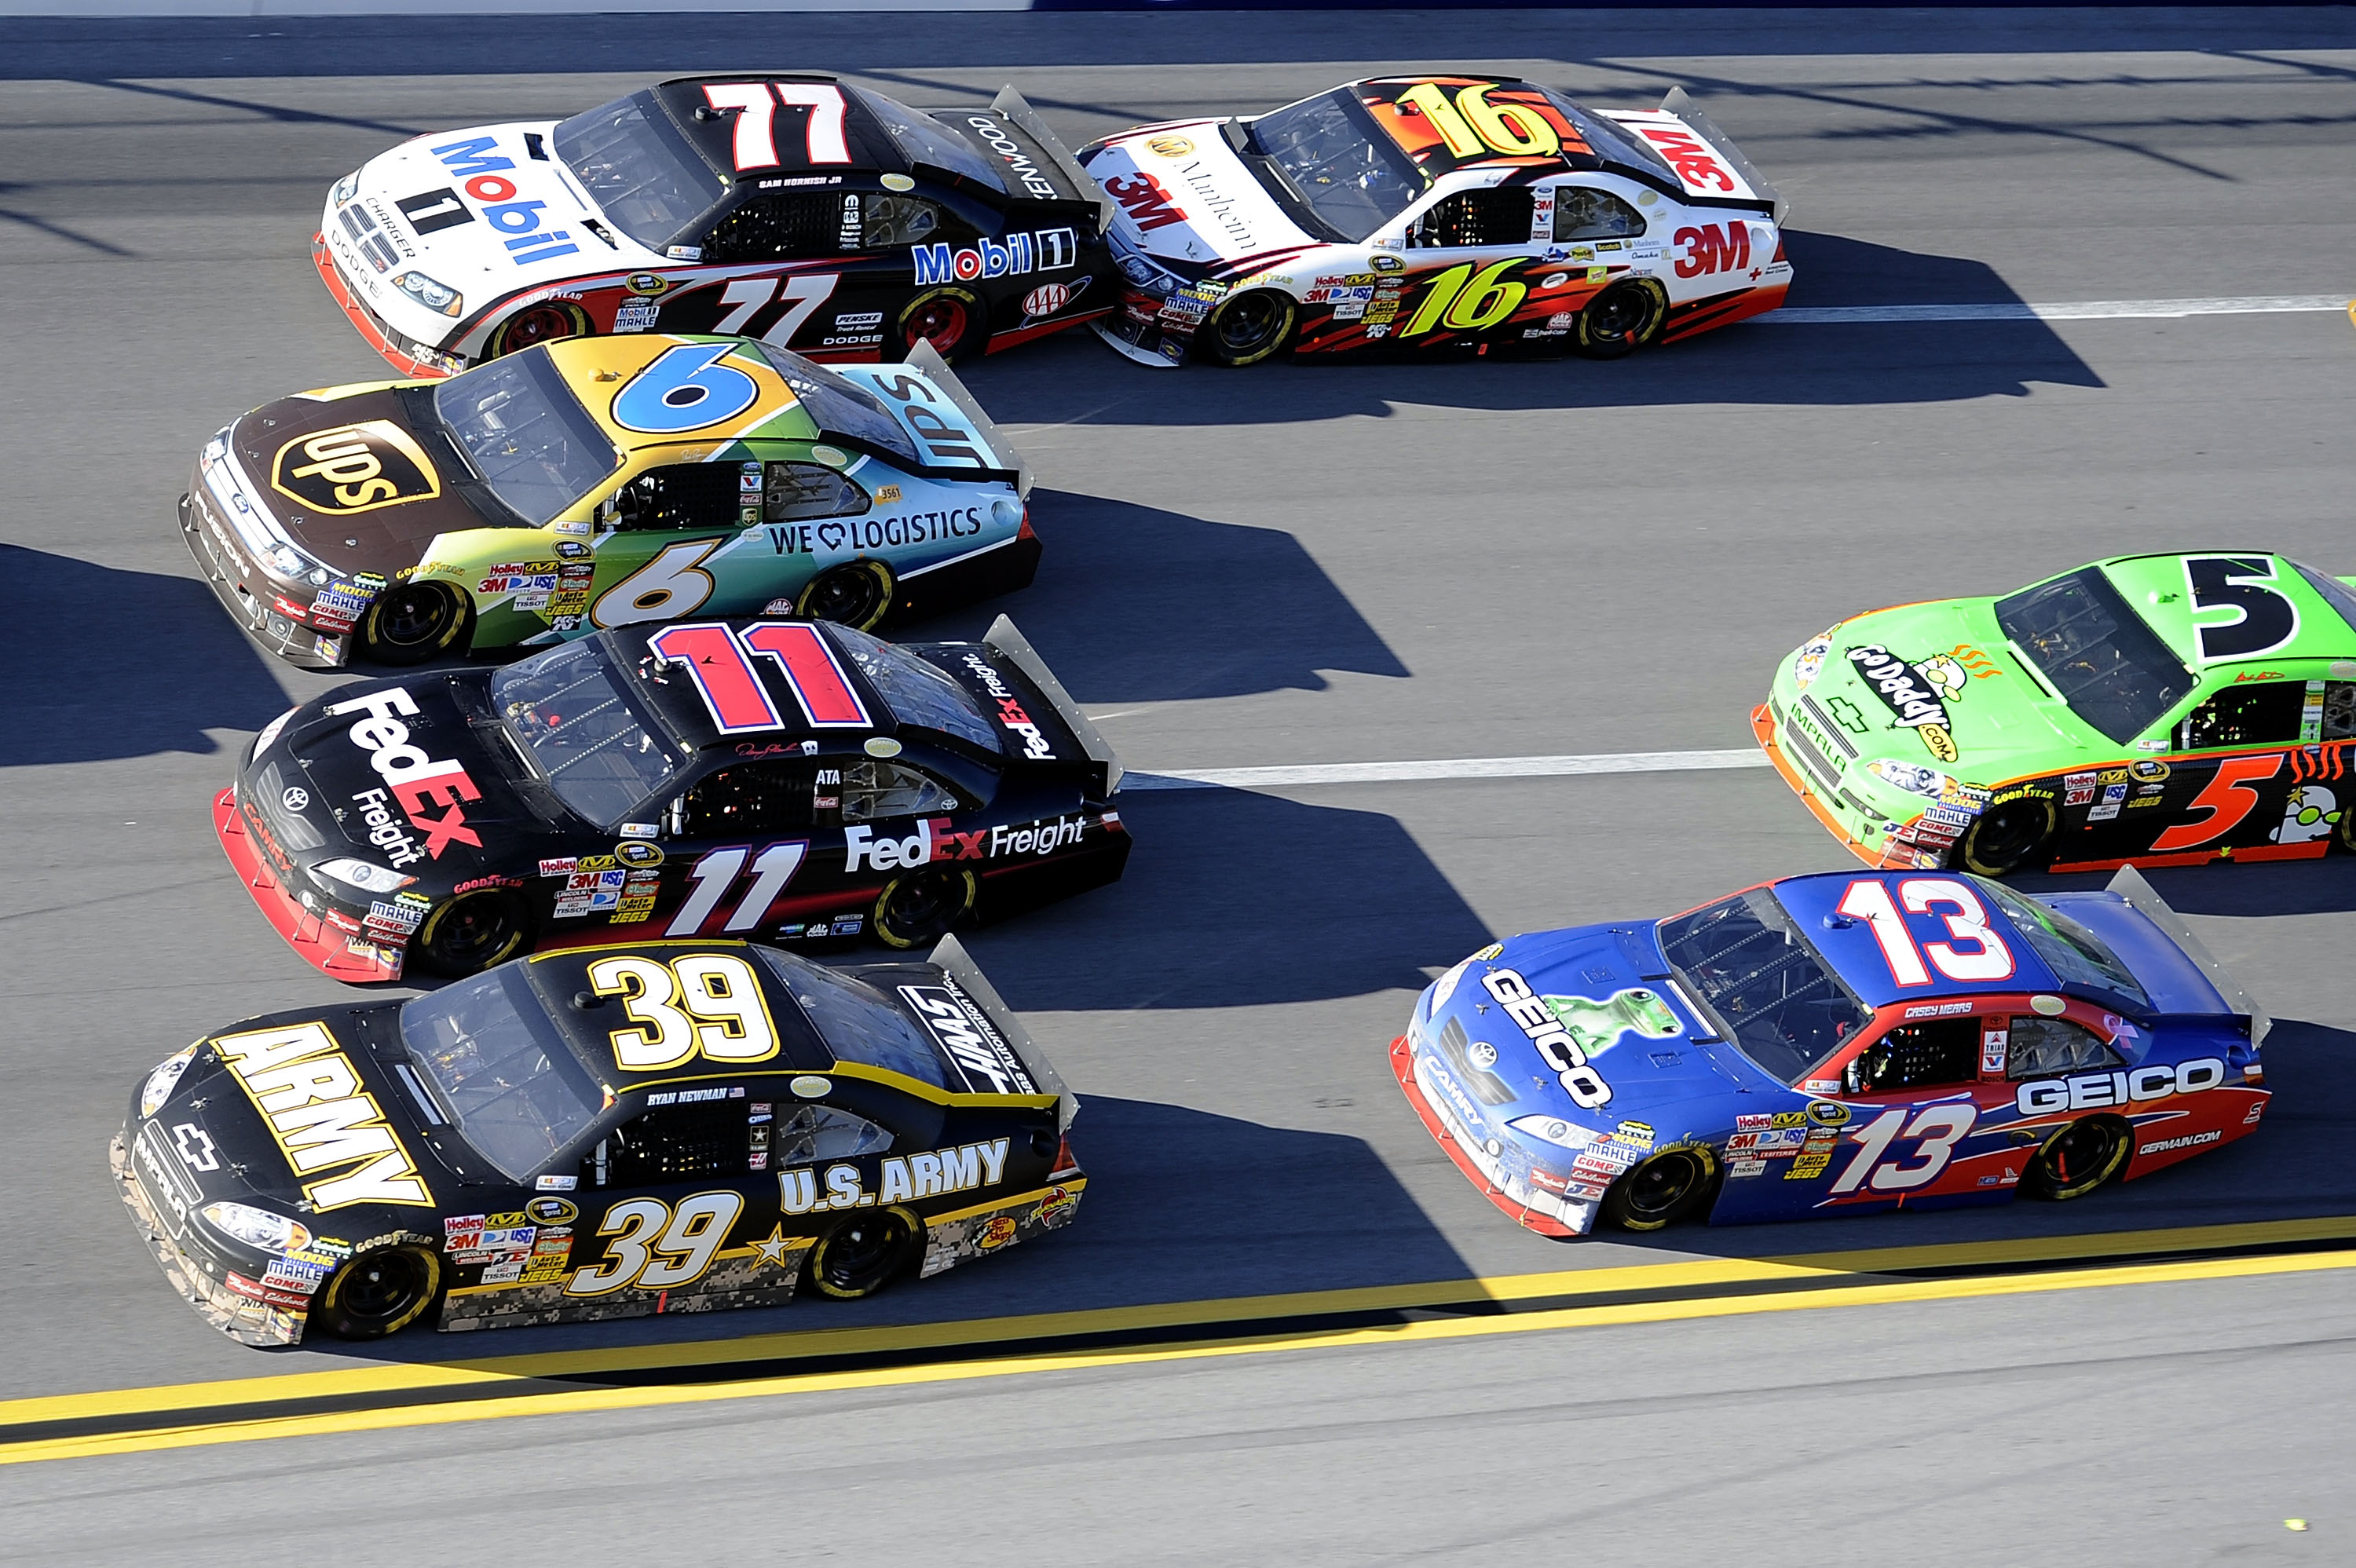 TALLADEGA, AL - OCTOBER 31:  Cars drive four lanes wide in turn three during the NASCAR Sprint Cup Series AMP Energy Juice 500 at Talladega Superspeedway on October 31, 2010 in Talladega, Alabama.  (Photo by John Harrelson/Getty Images for NASCAR)